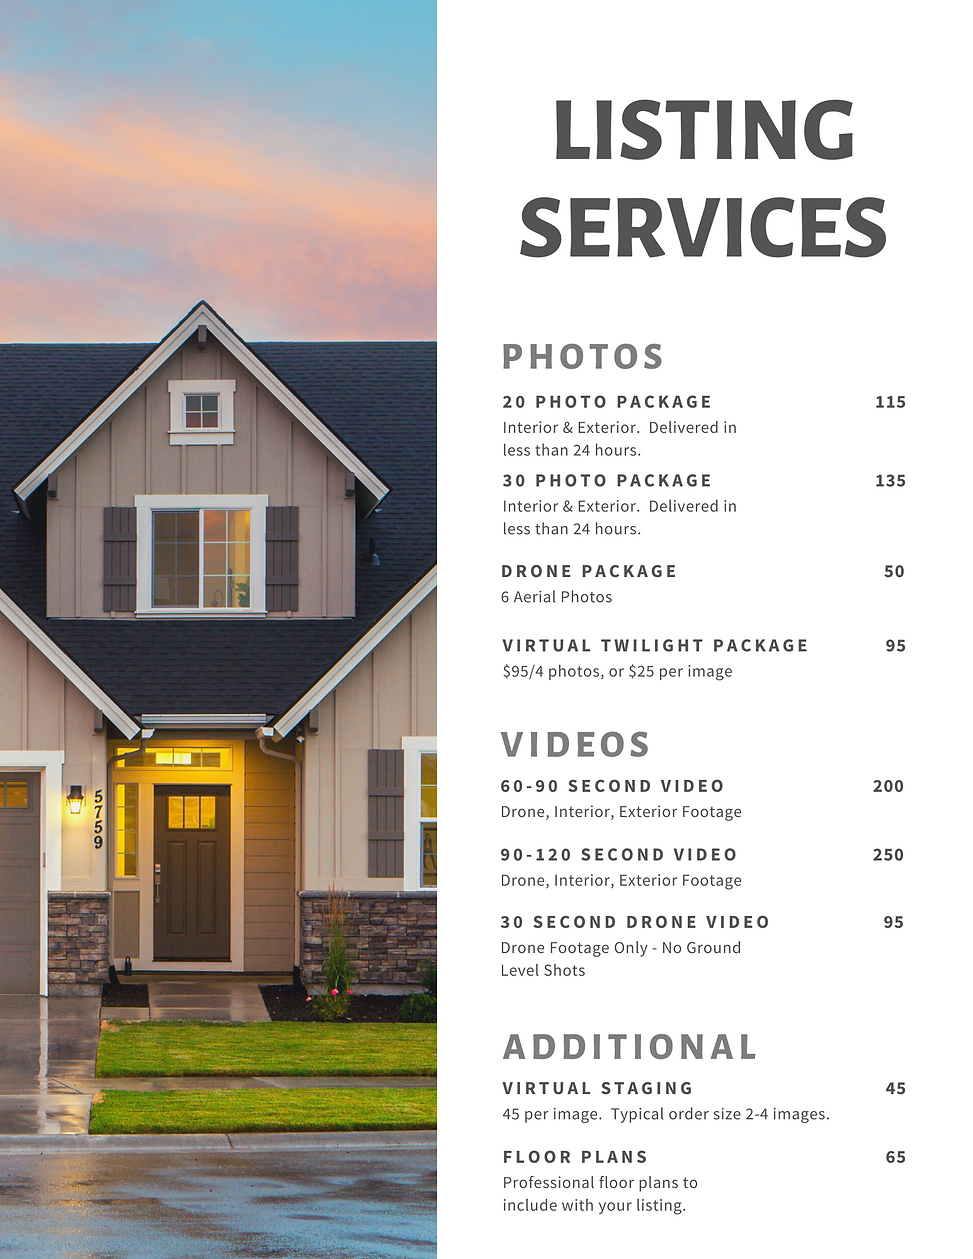 August 2nd Listing Services